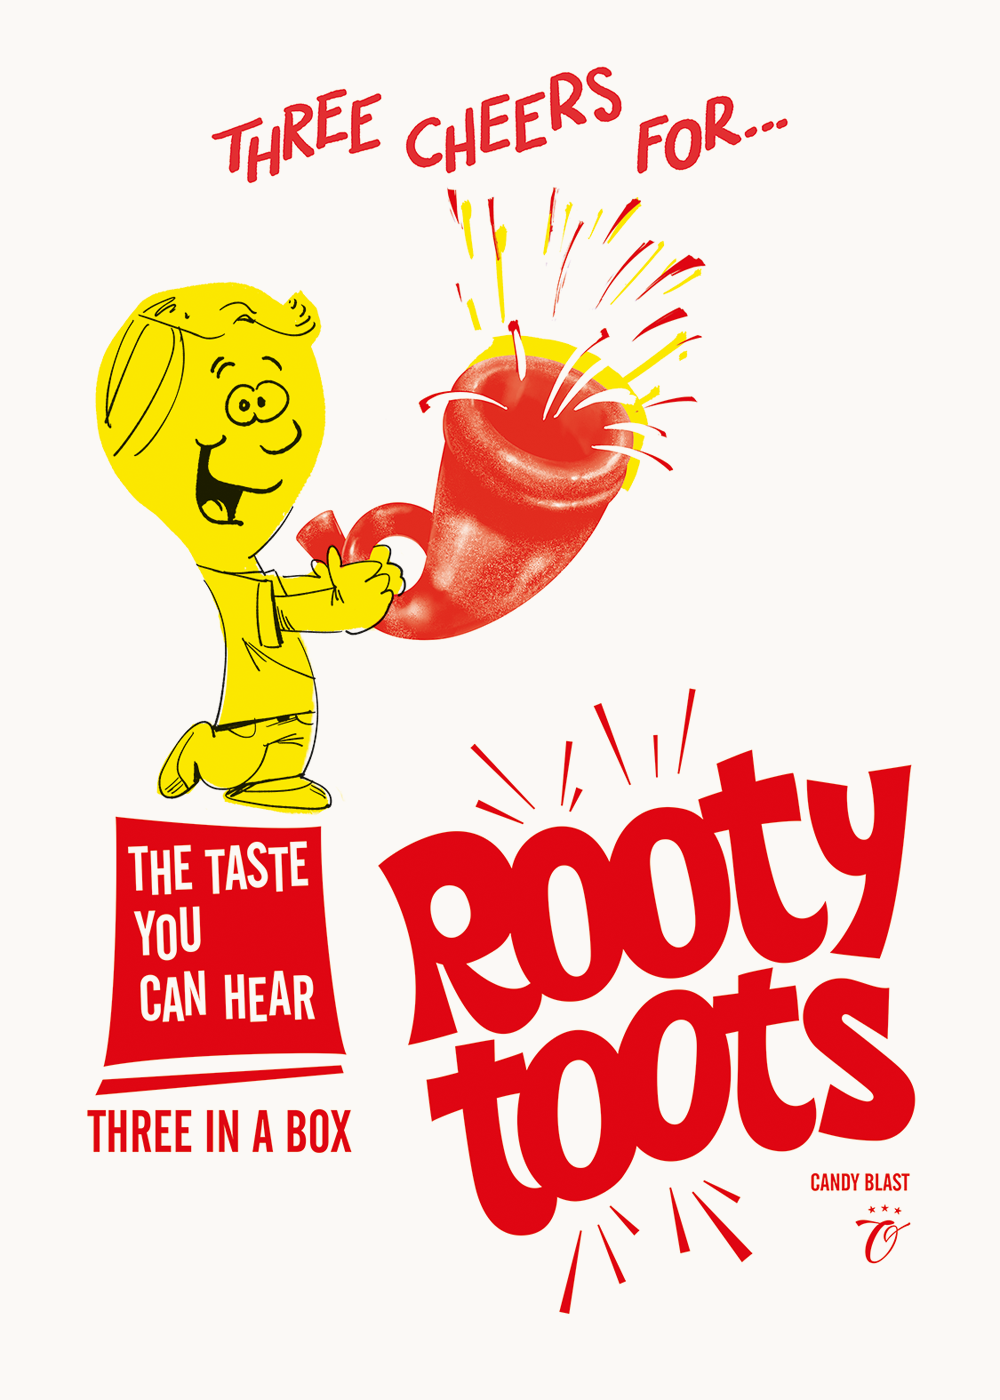 Rooty-Toots - Three Cheers for…